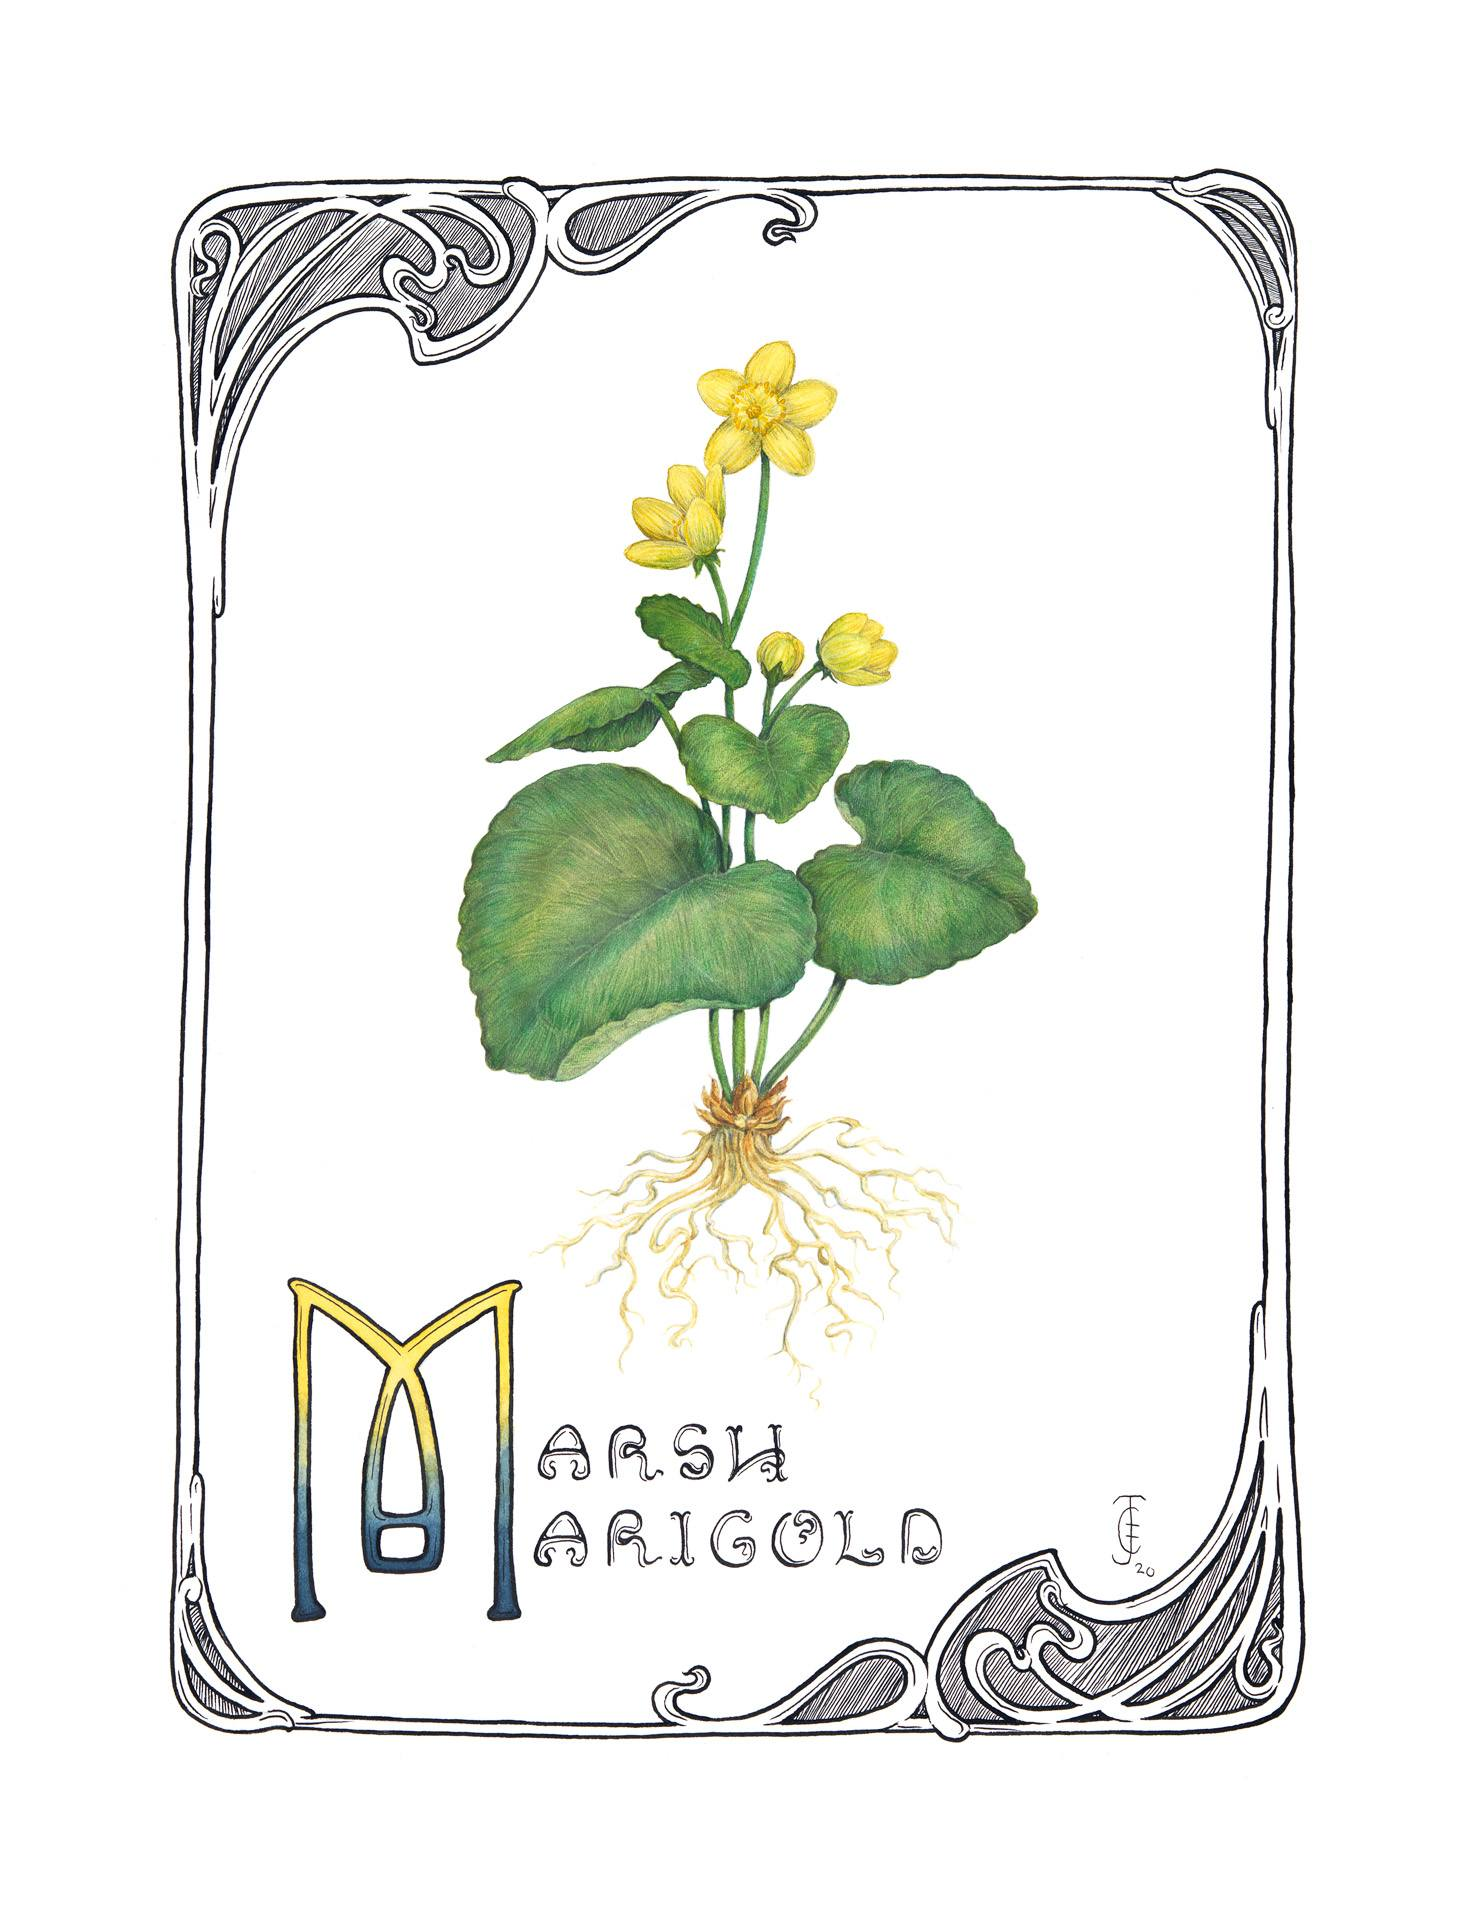 Marsh marigold, Caltha palustris, Watercolor, graphite and India ink by Jessi Cramer